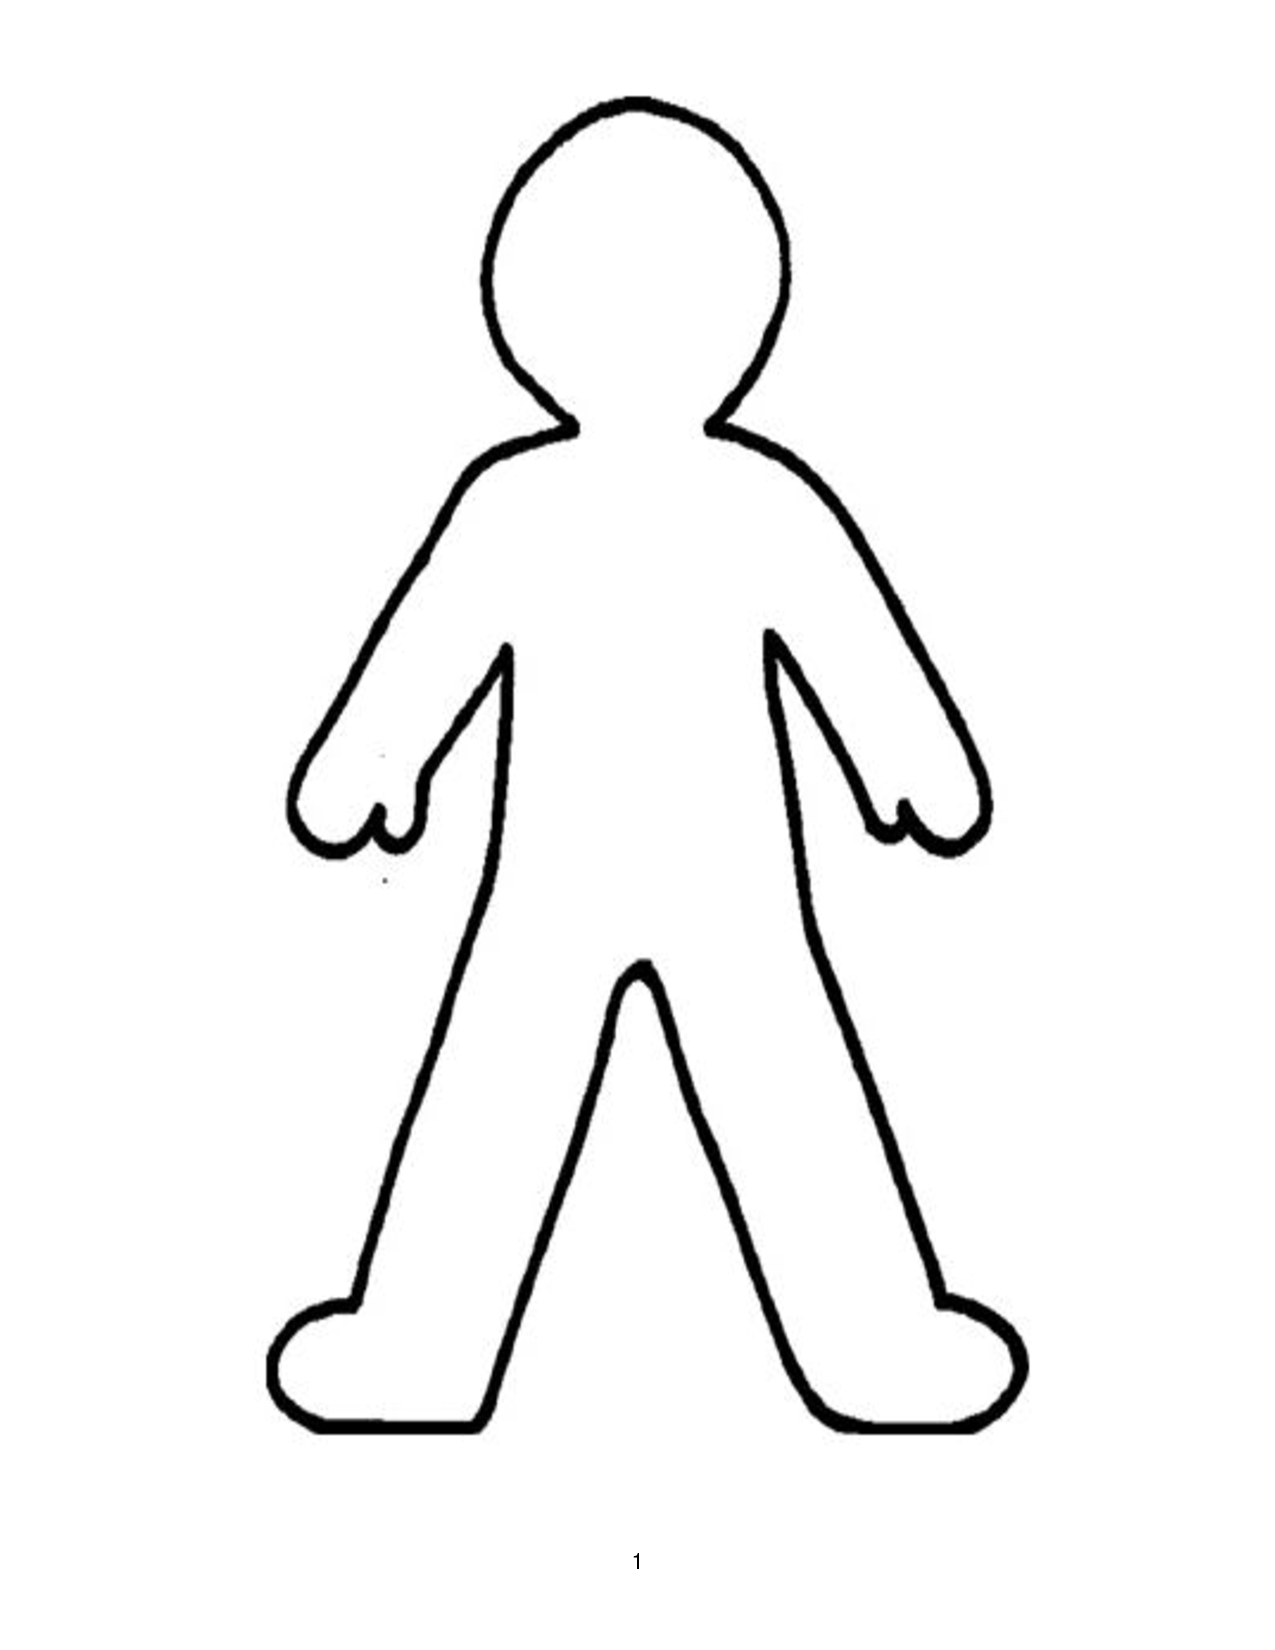 Doll Outline Template - Clipart Best | Printable | Pinterest - Free Printable Human Body Template